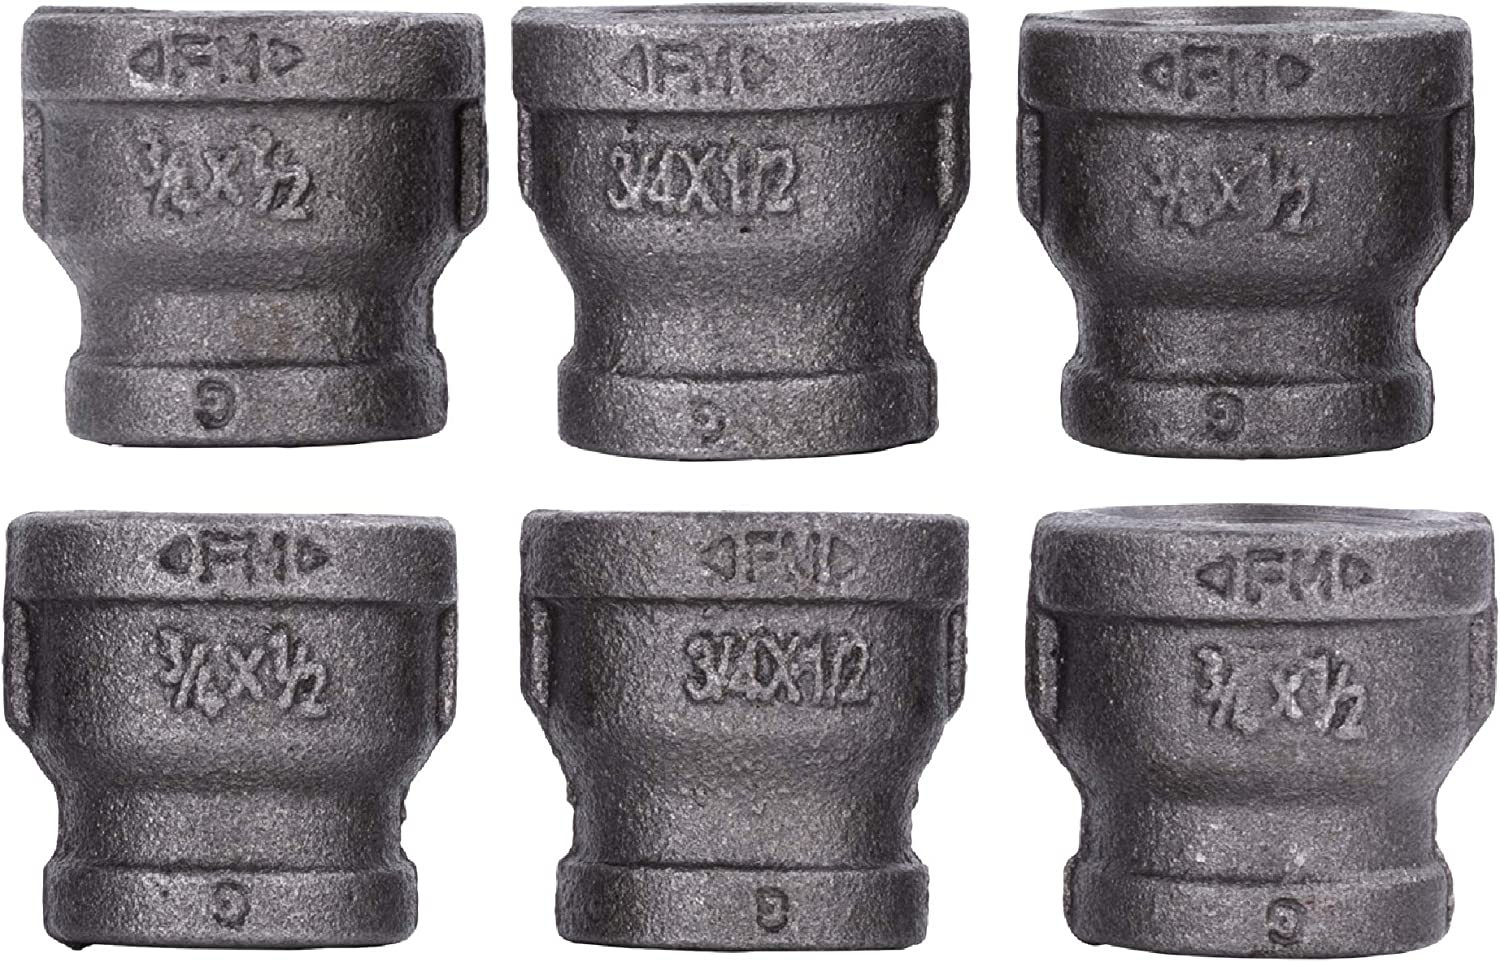 "3/4"" x 1/2"" Inch Reducing Coupling Industrial Malleable Cast Iron Pipe Fitting 6 Pack by Pipe Decor, Pipe Components for Building Tables, Chairs, Shelving, and Custom Furniture, Six Pack Couplings"